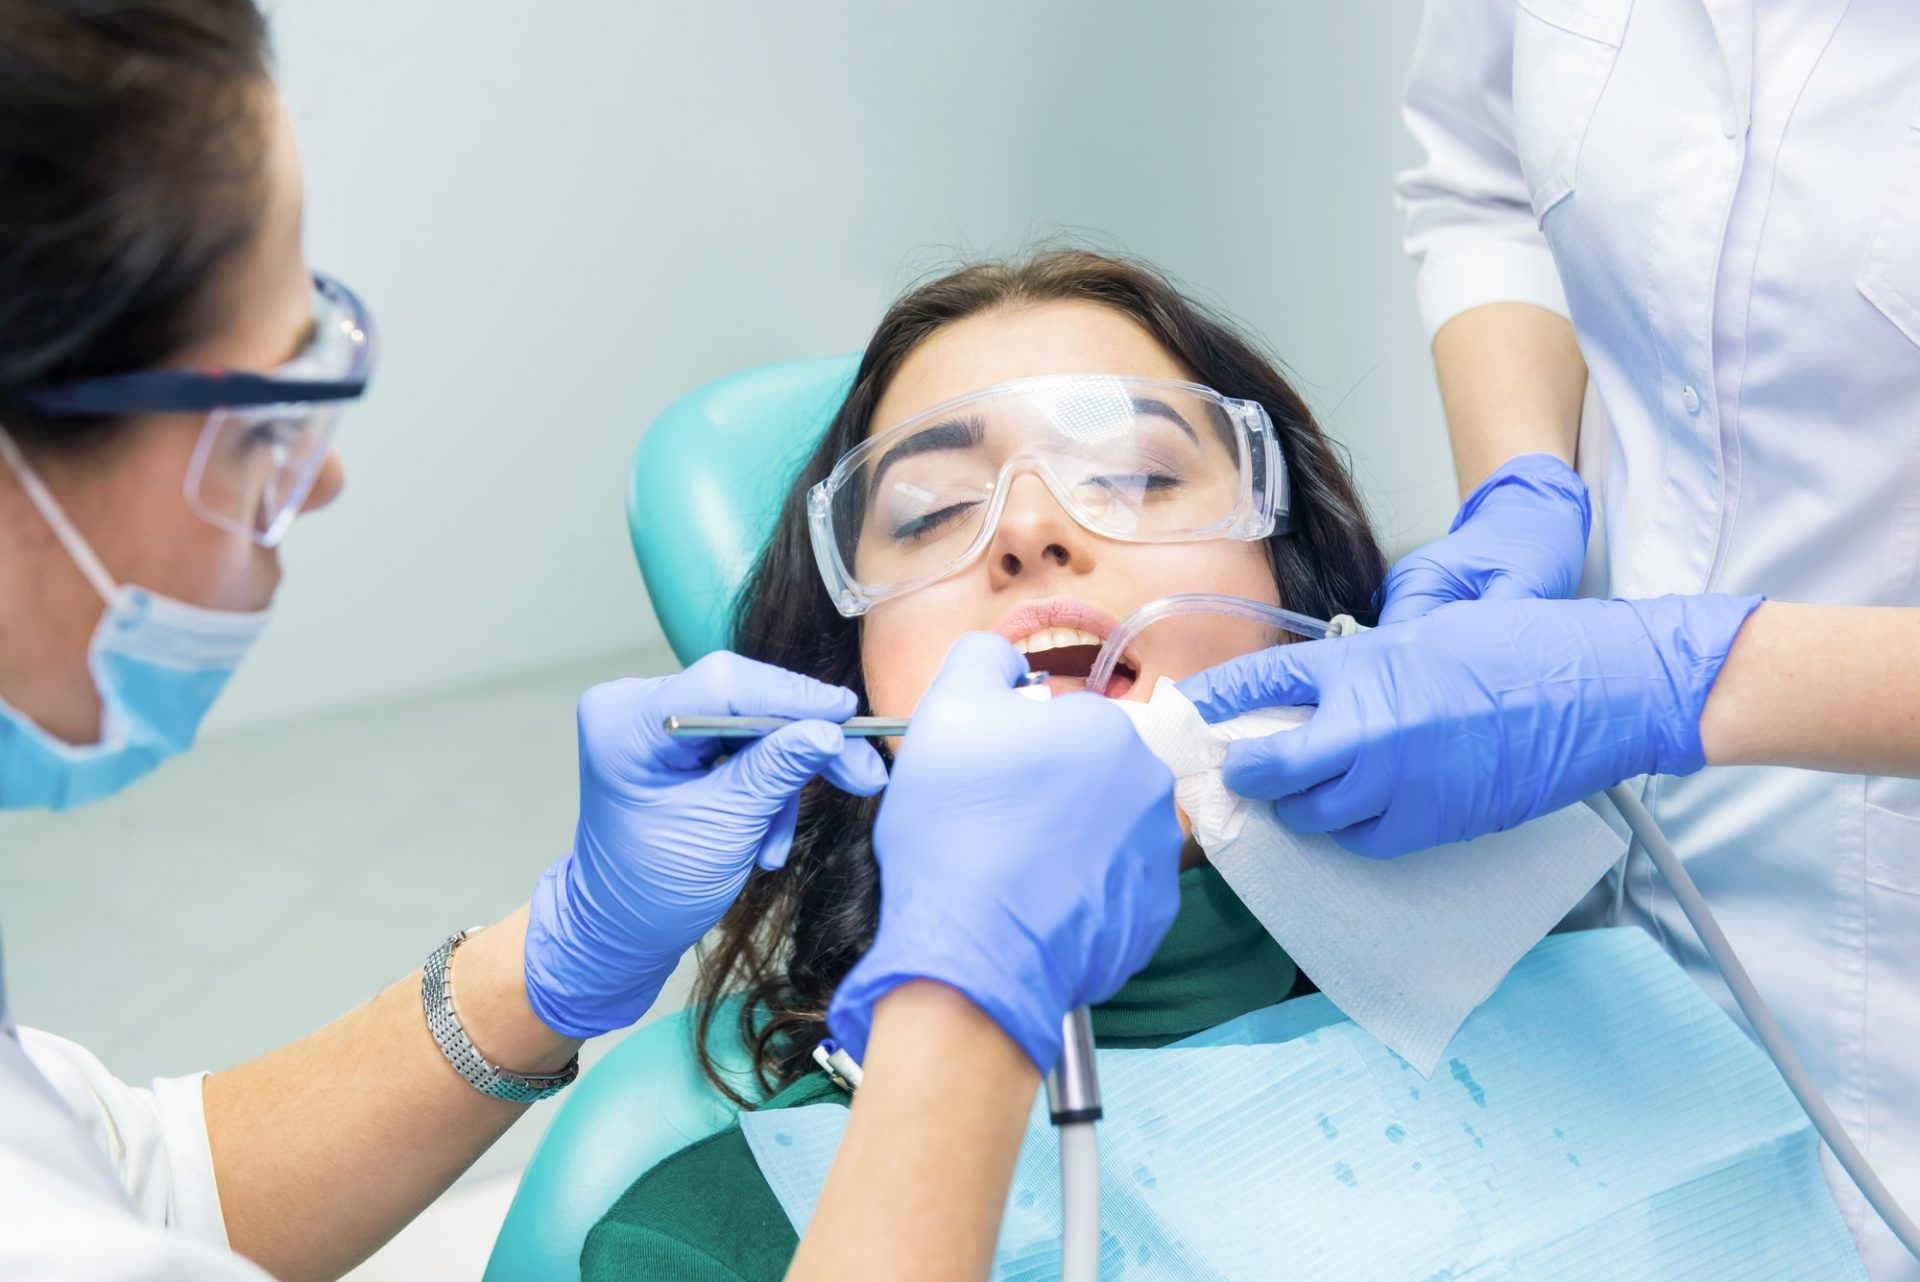 Dentists are working with patient